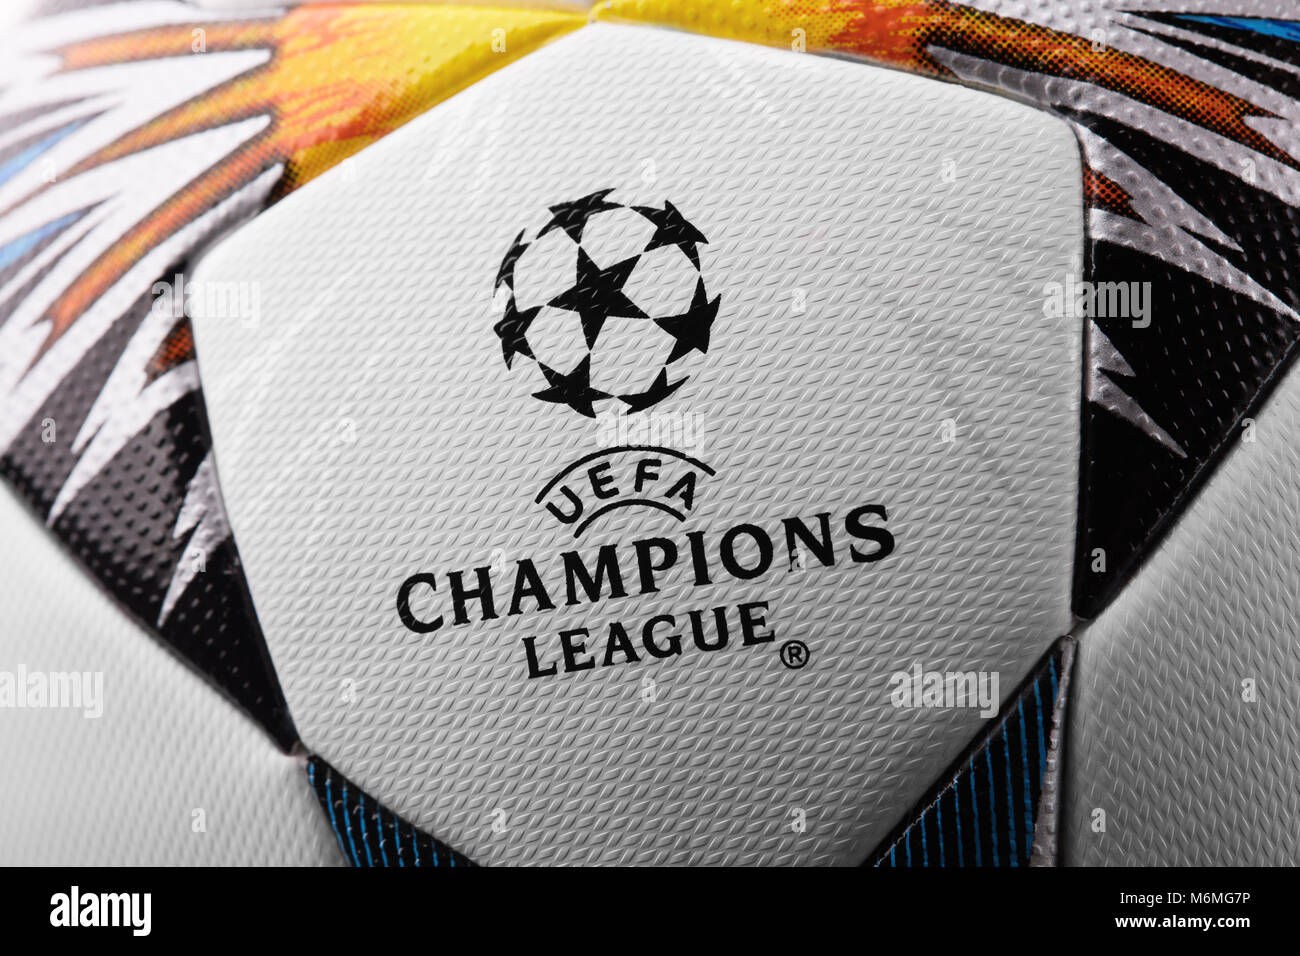 adidas Finale 18 Kiev UEFA Champions League Match Ball